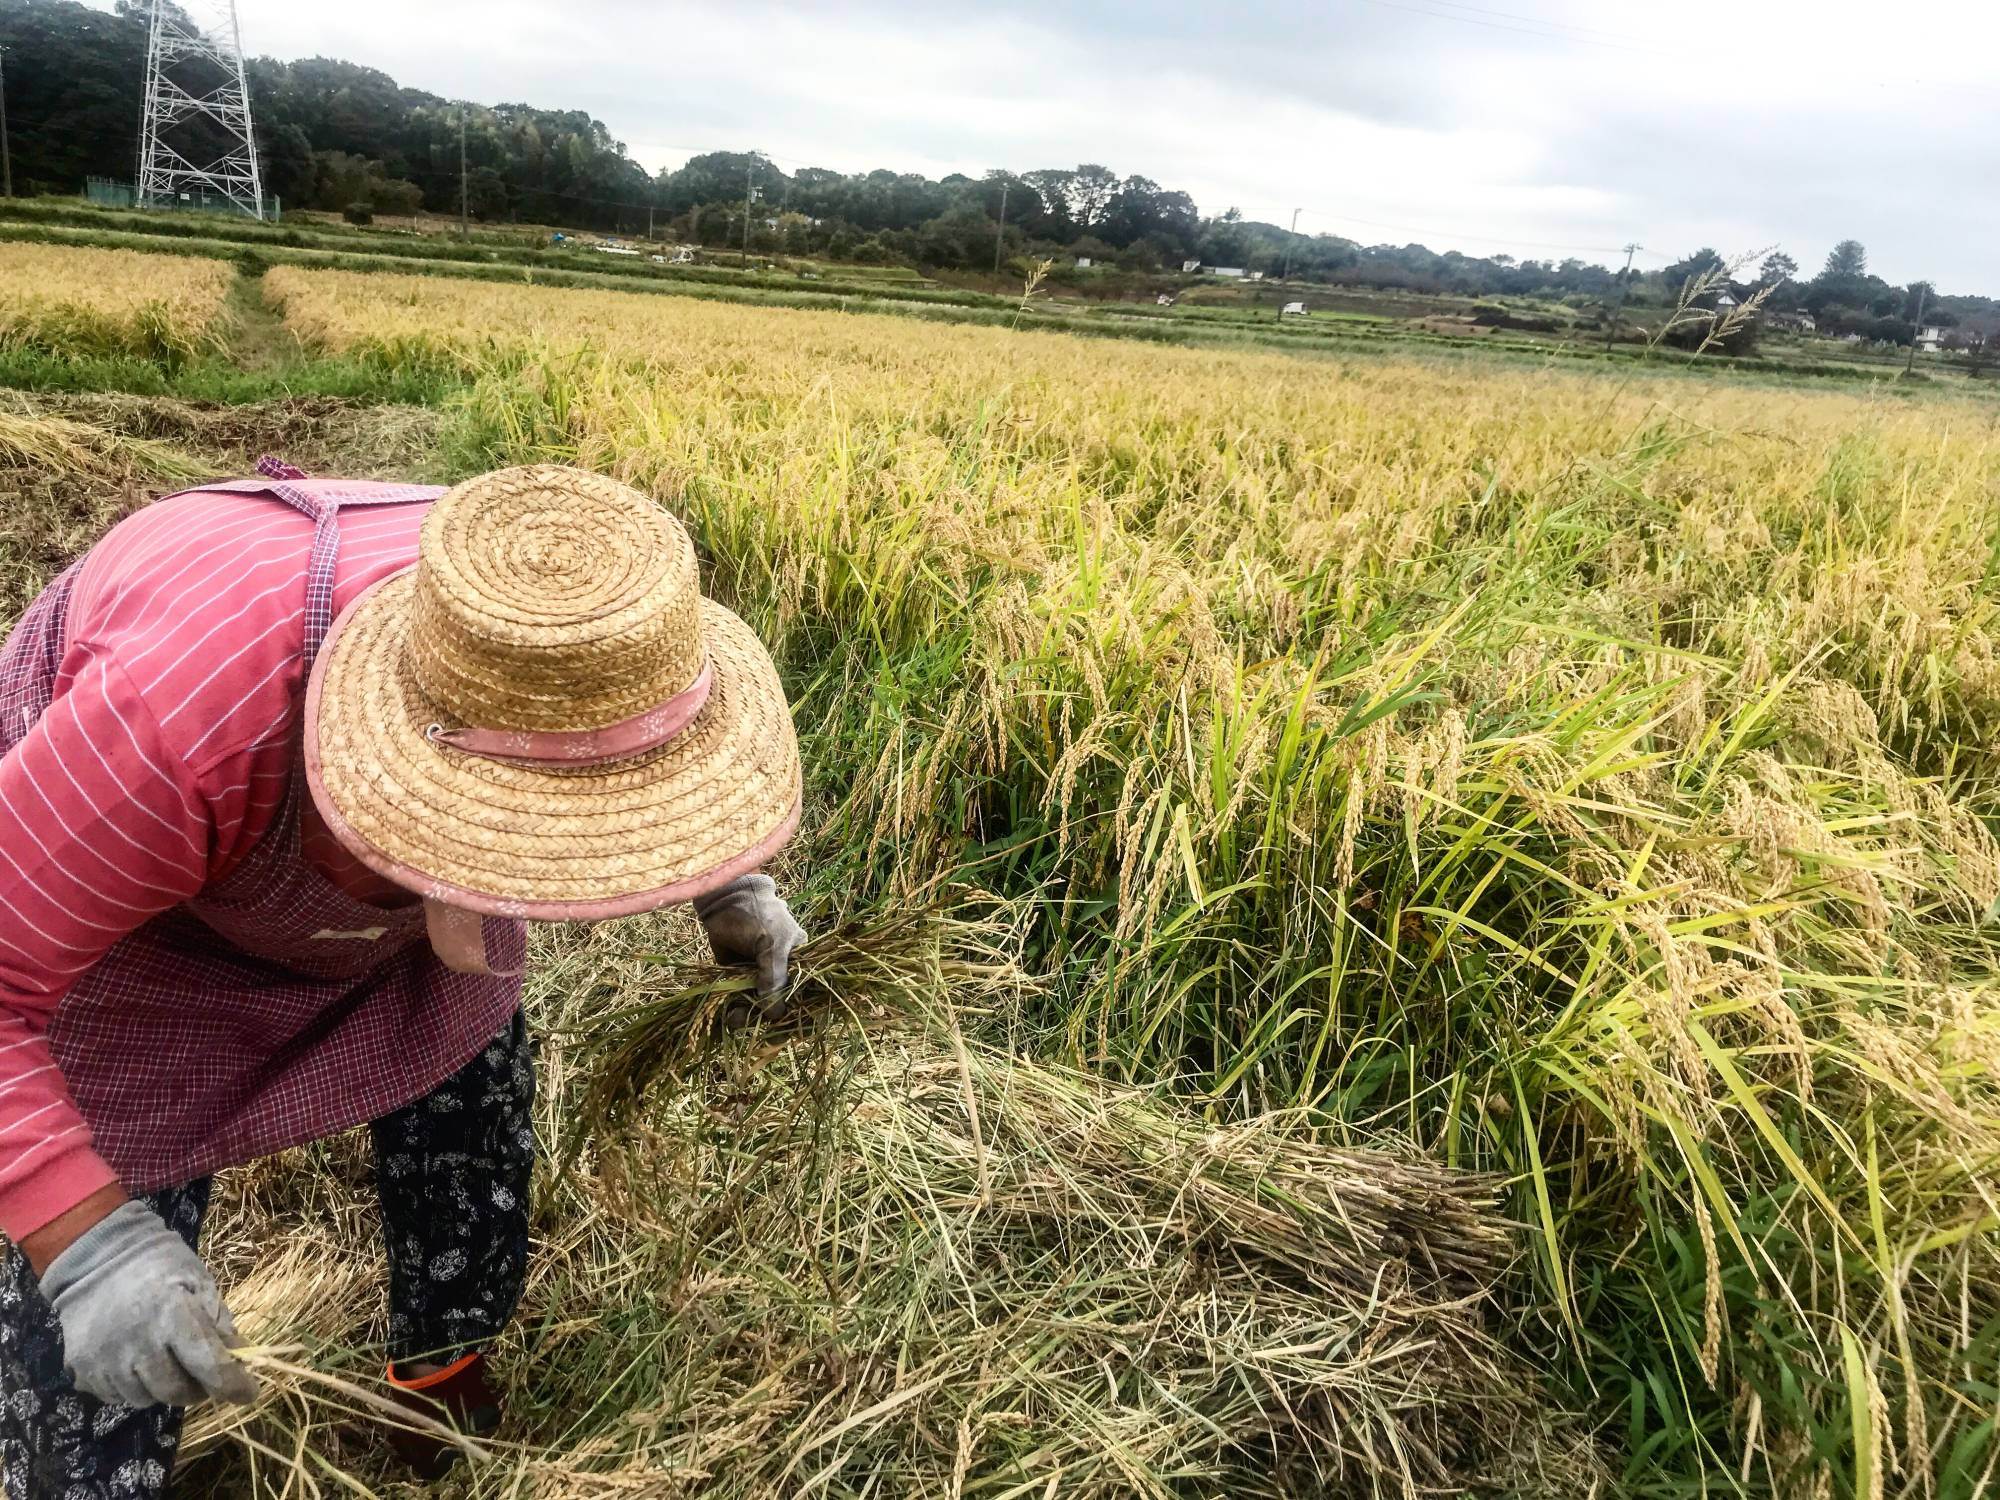 Country community: At this farm in Kanagawa Prefecture, people commute from the city on weekends and bank holidays to work with local, often elderly, farmers to grow rice, fruits and vegetables. | MOMOKO NAKAMURA